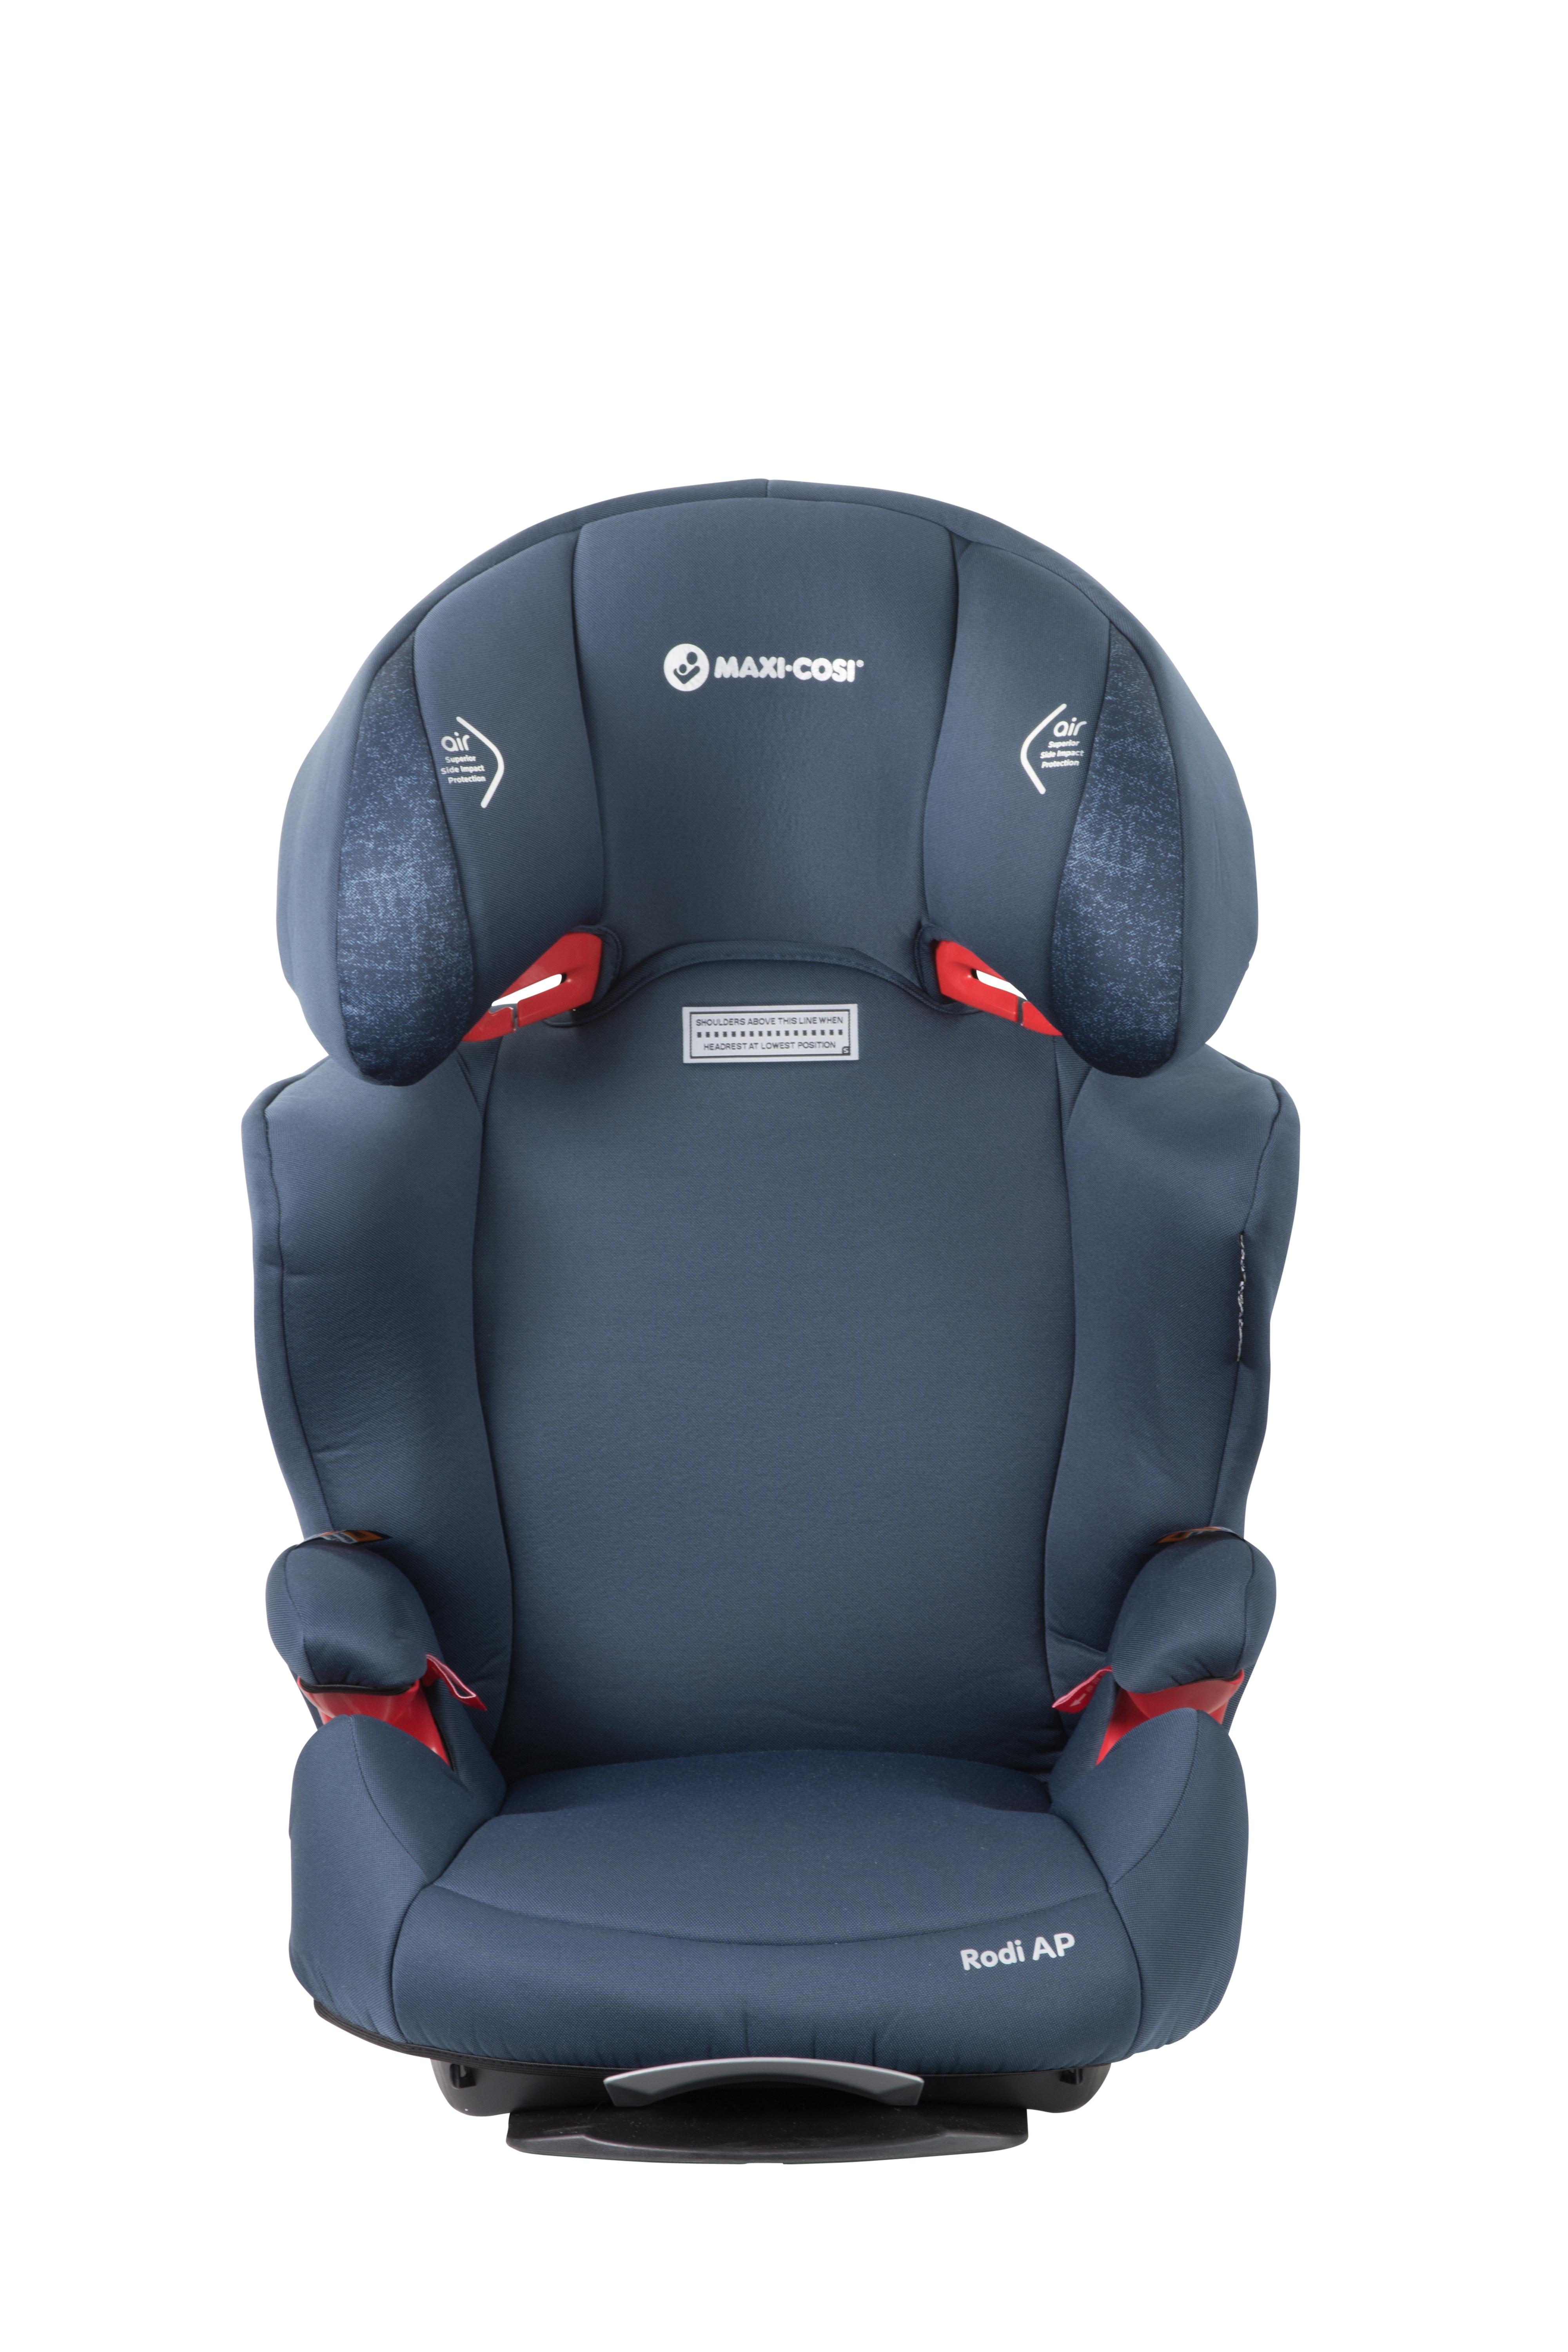 maxi cosi rodi ap booster seat 4 6 yrs approx babyroad. Black Bedroom Furniture Sets. Home Design Ideas